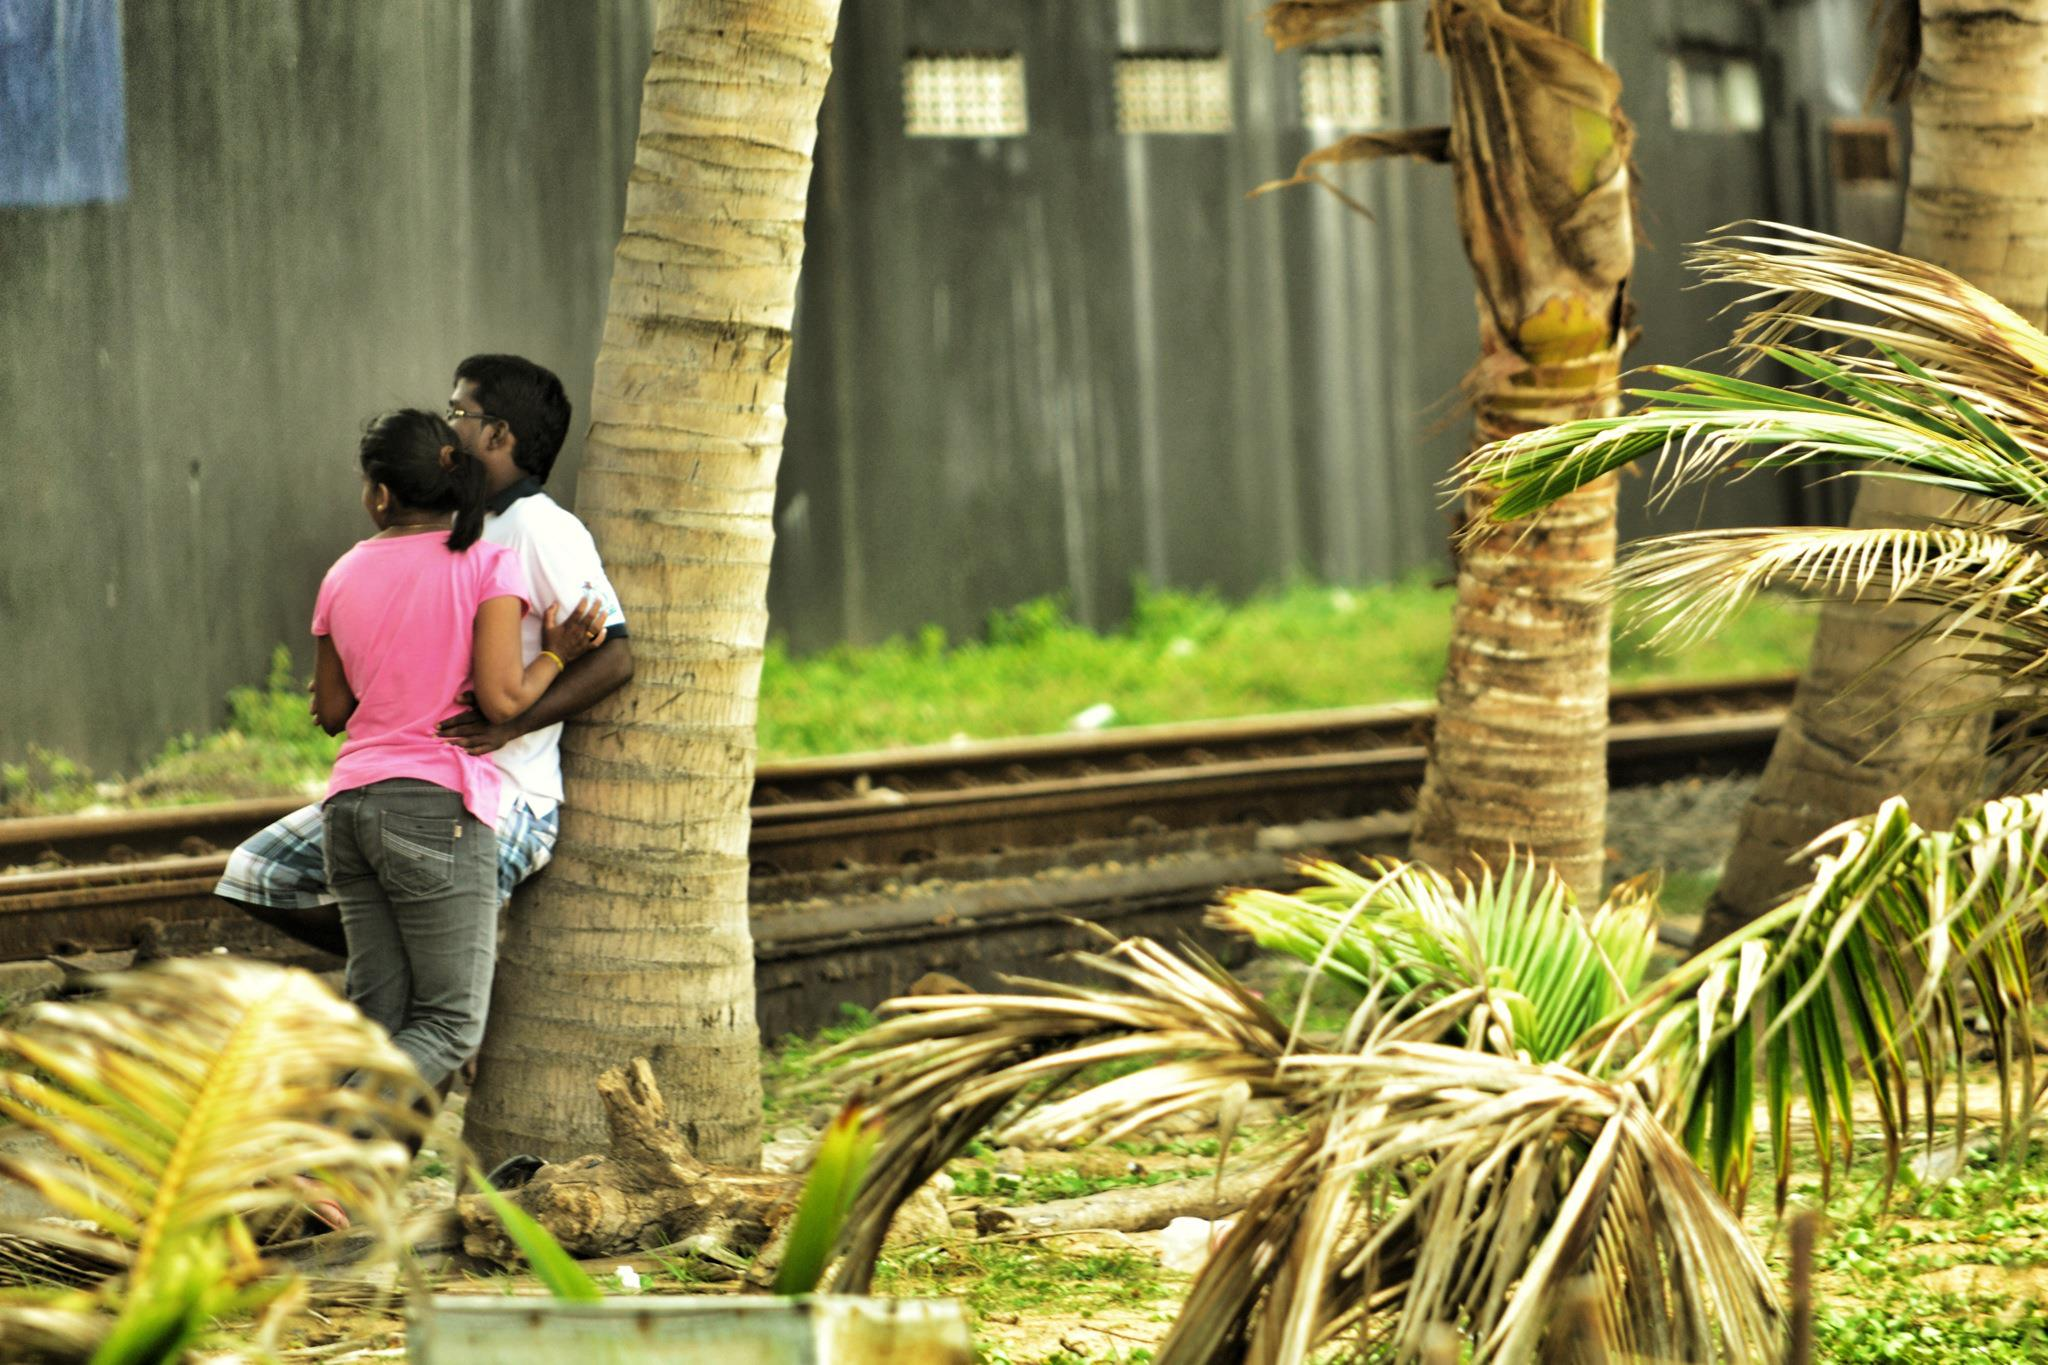 Couples in Colombo romance by the railway track